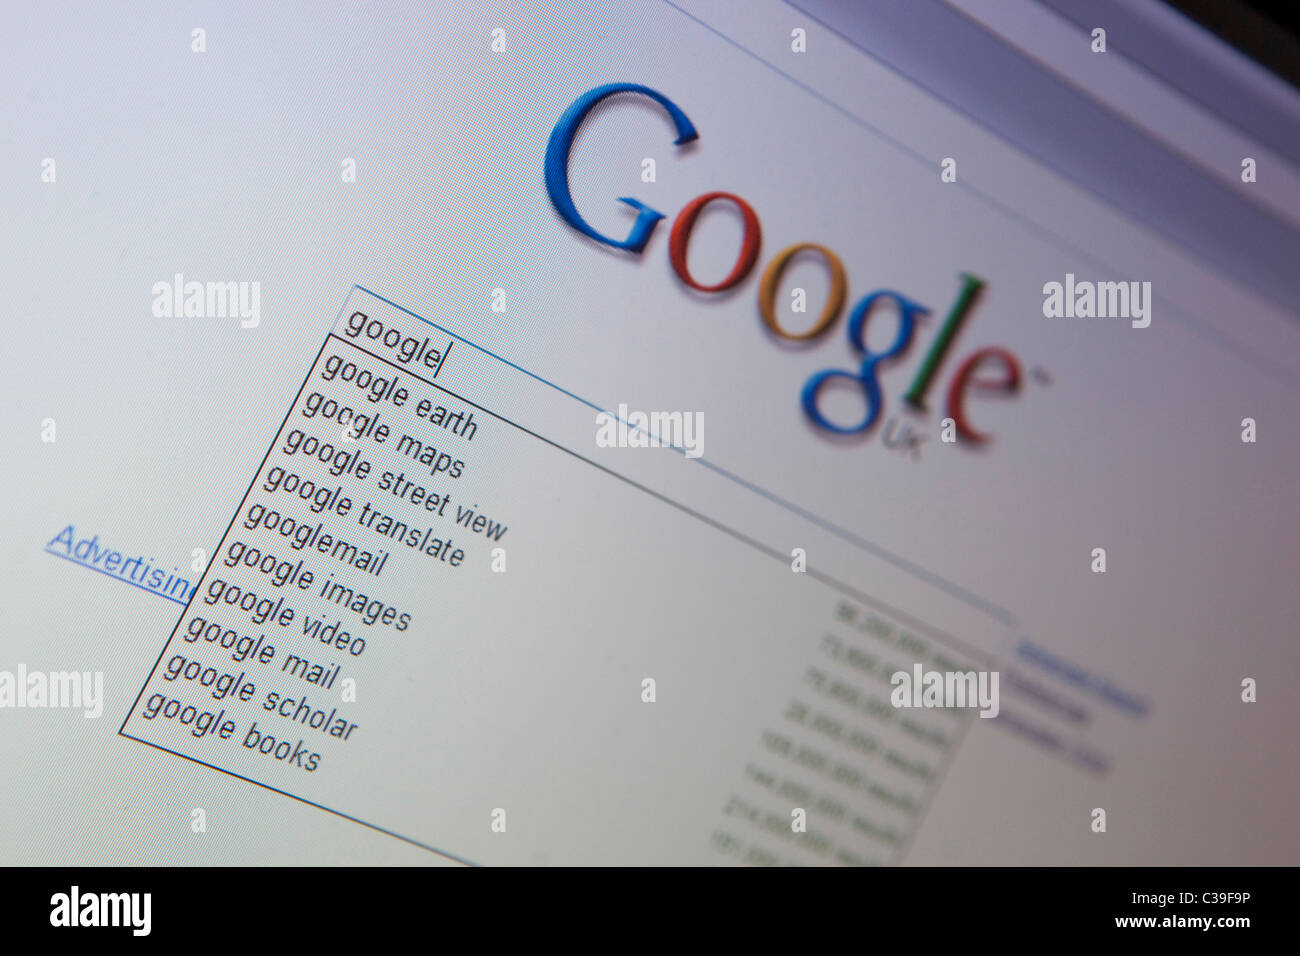 Illustrative image of the Google search engine website. - Stock Image